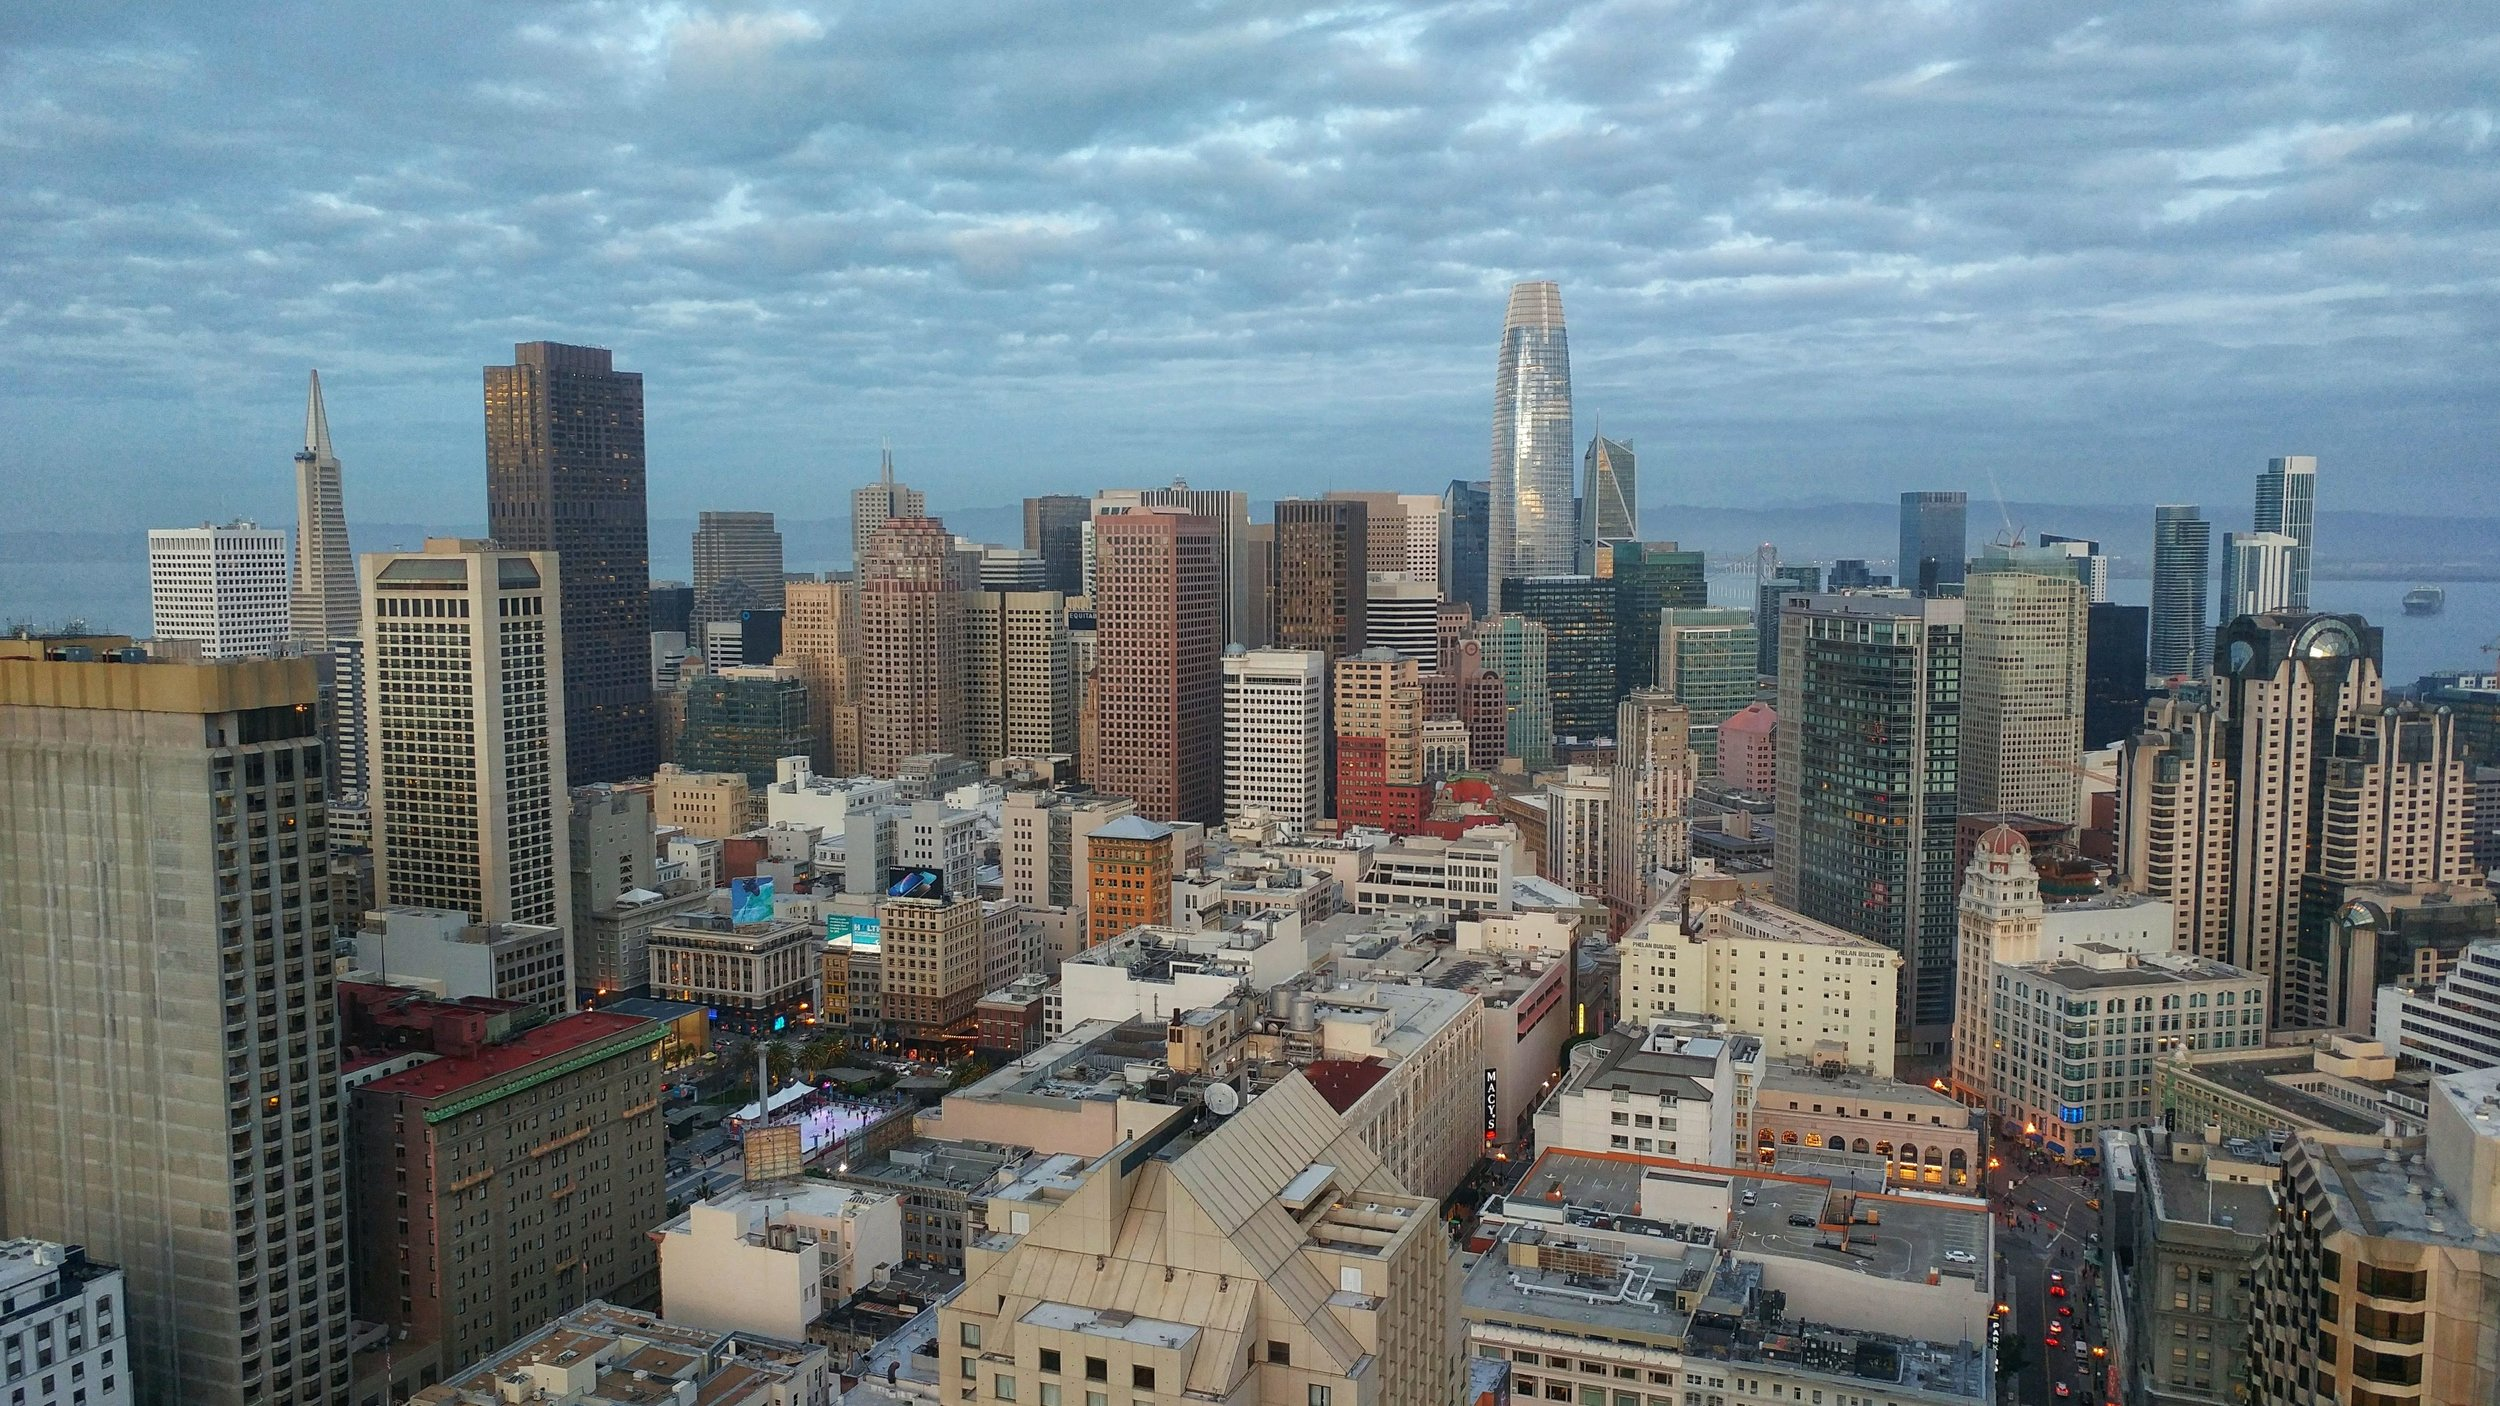 The San Francisco Skyline from the Top of the Hilton